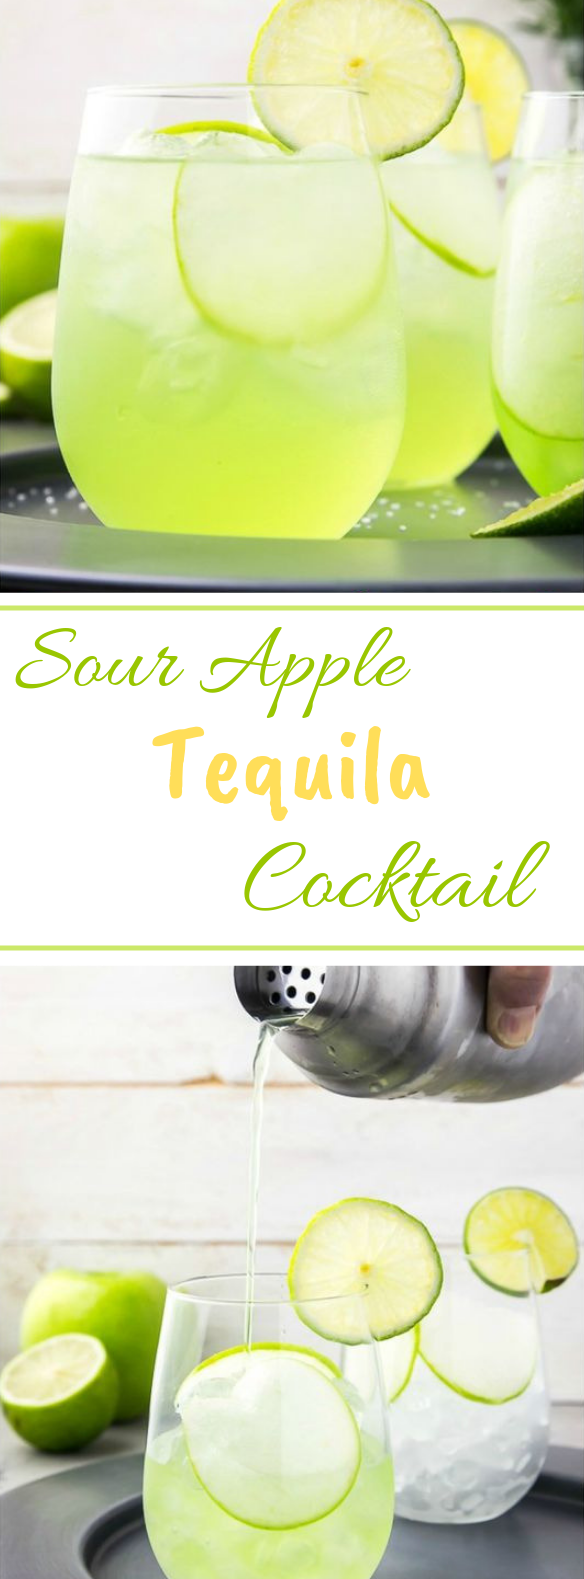 Sour Apple Tequila Cocktail – The Lucky Shamrock #drinks #cocktail